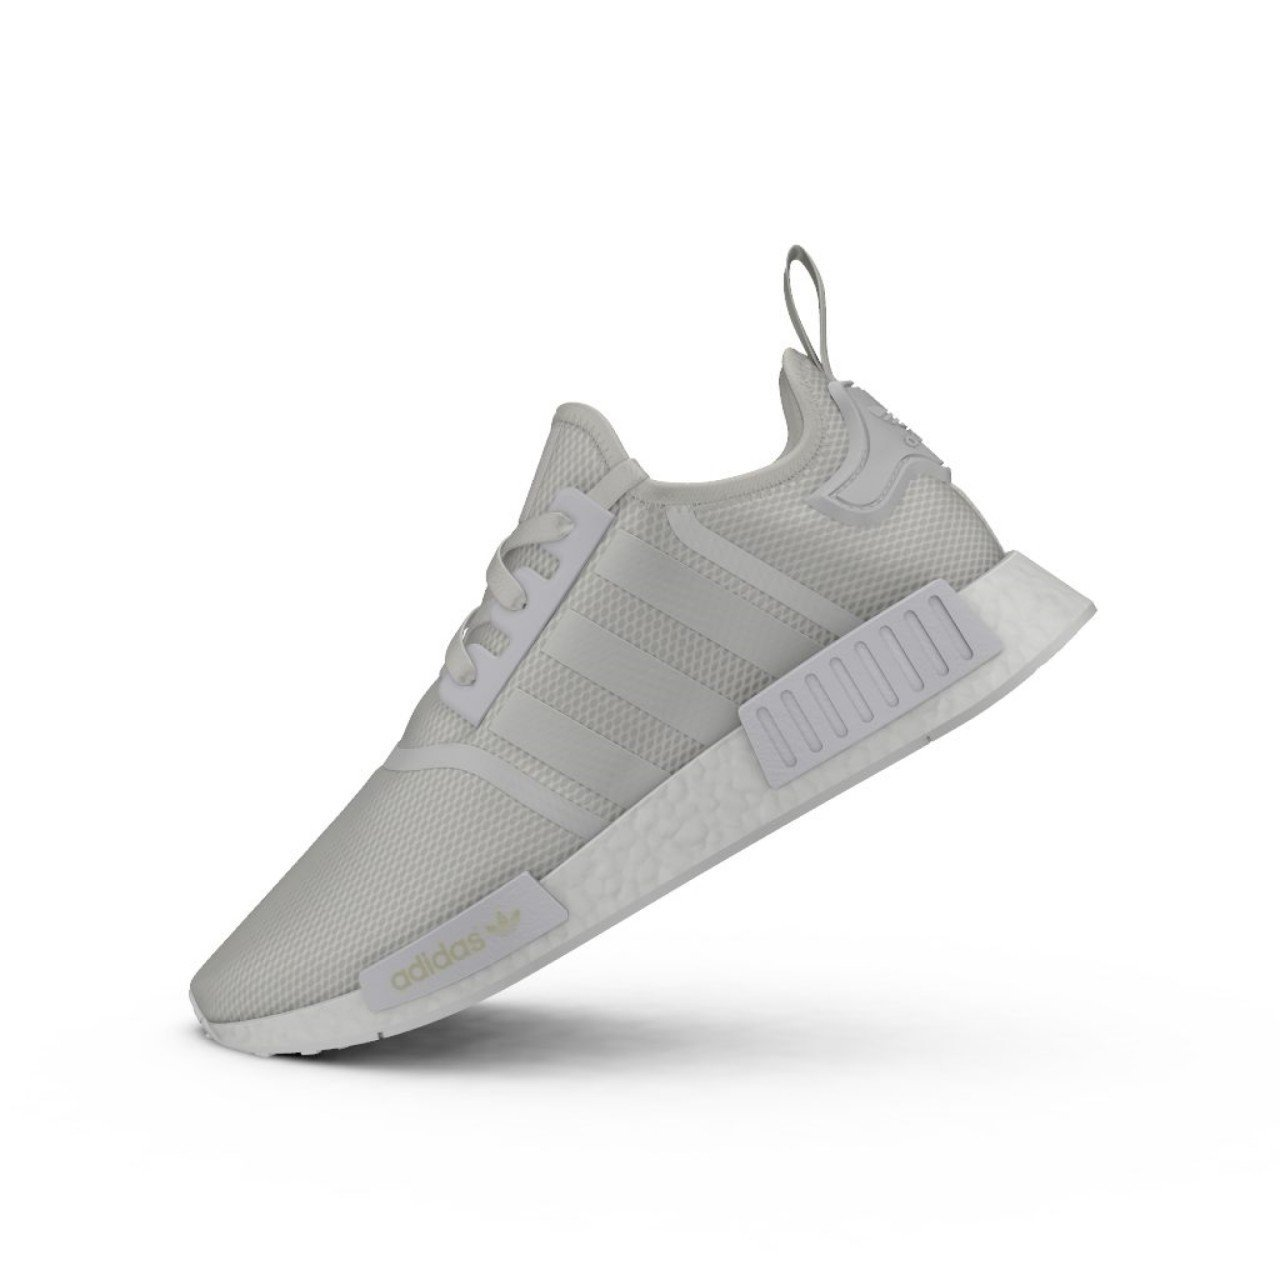 newest cf947 bf6f0 adidas Originals NMD R1 Mens Trainers Sneakers Shoes (UK 7.5 US 8 EU 41  1/3, Monochrome White S79166)